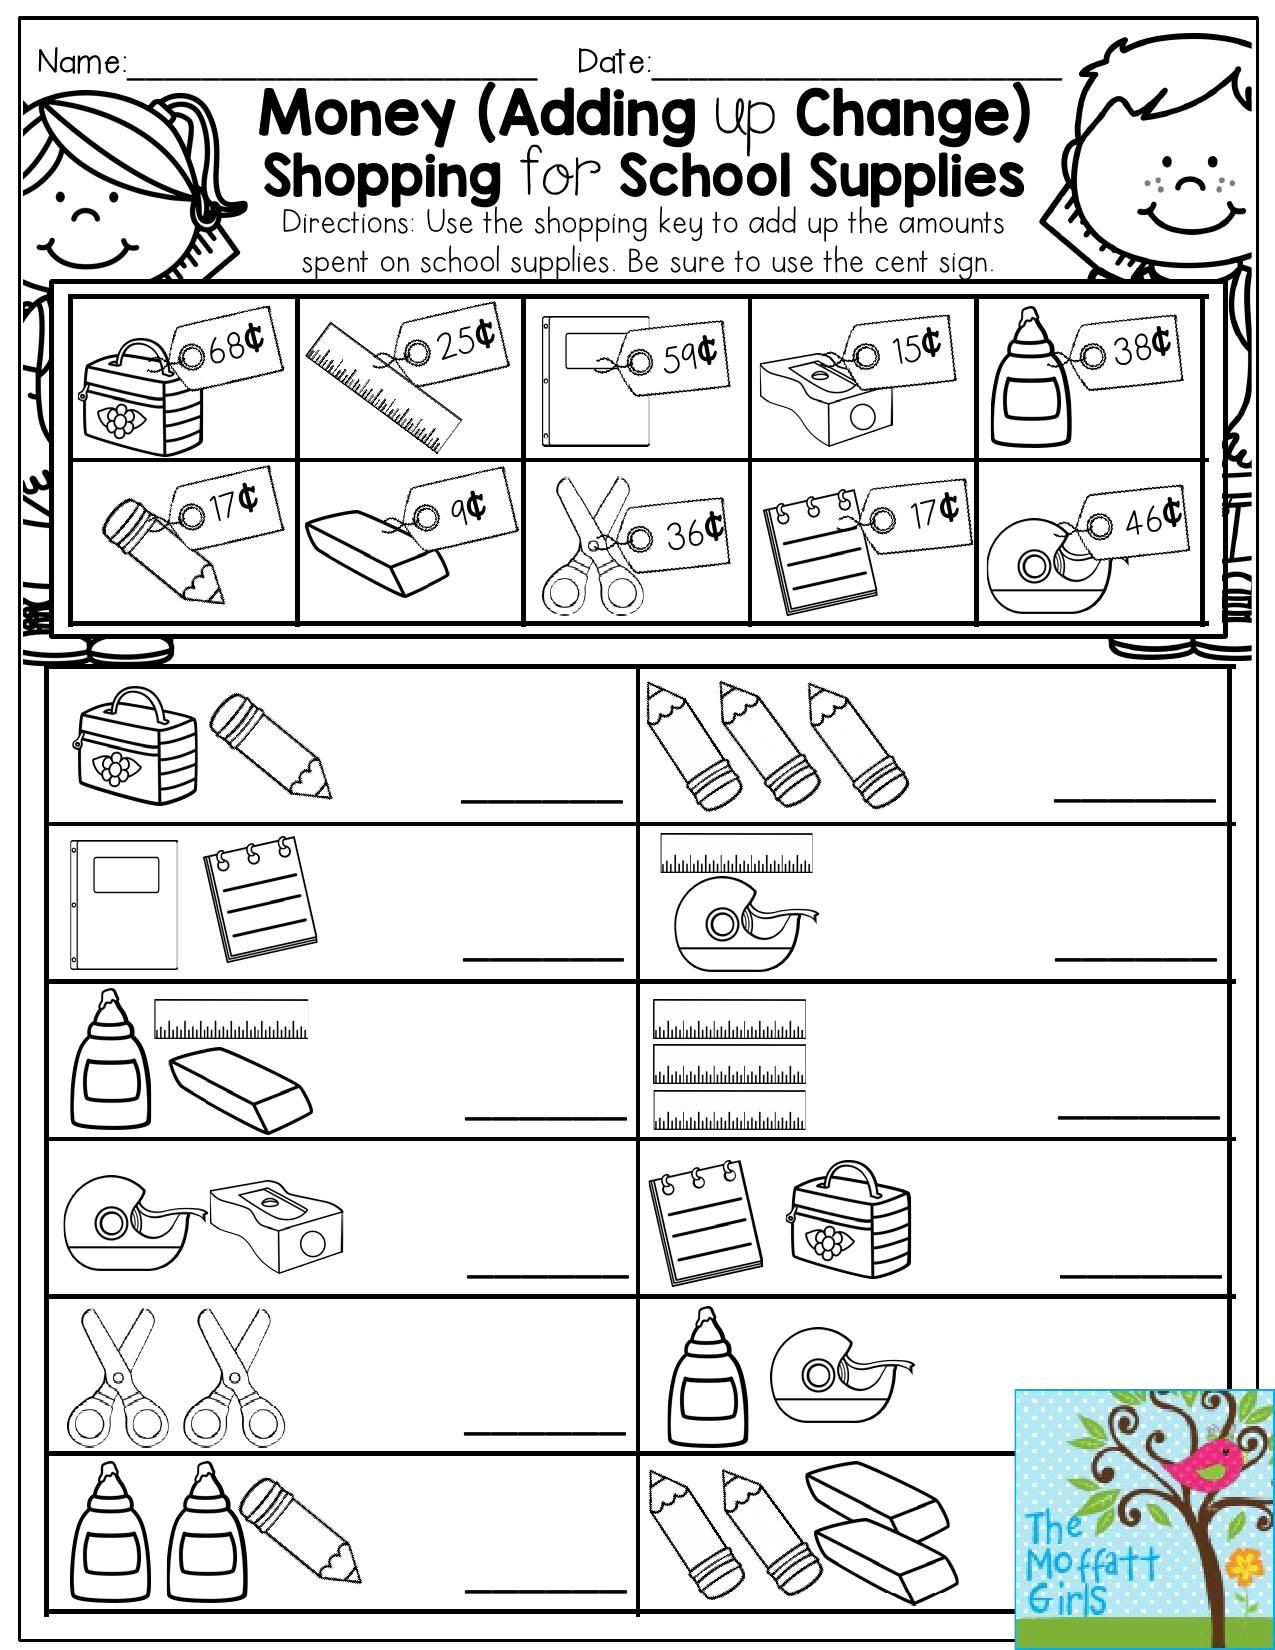 Grocery Shopping Math Worksheets Money Adding Up Change Shopping for School Supplies Fun